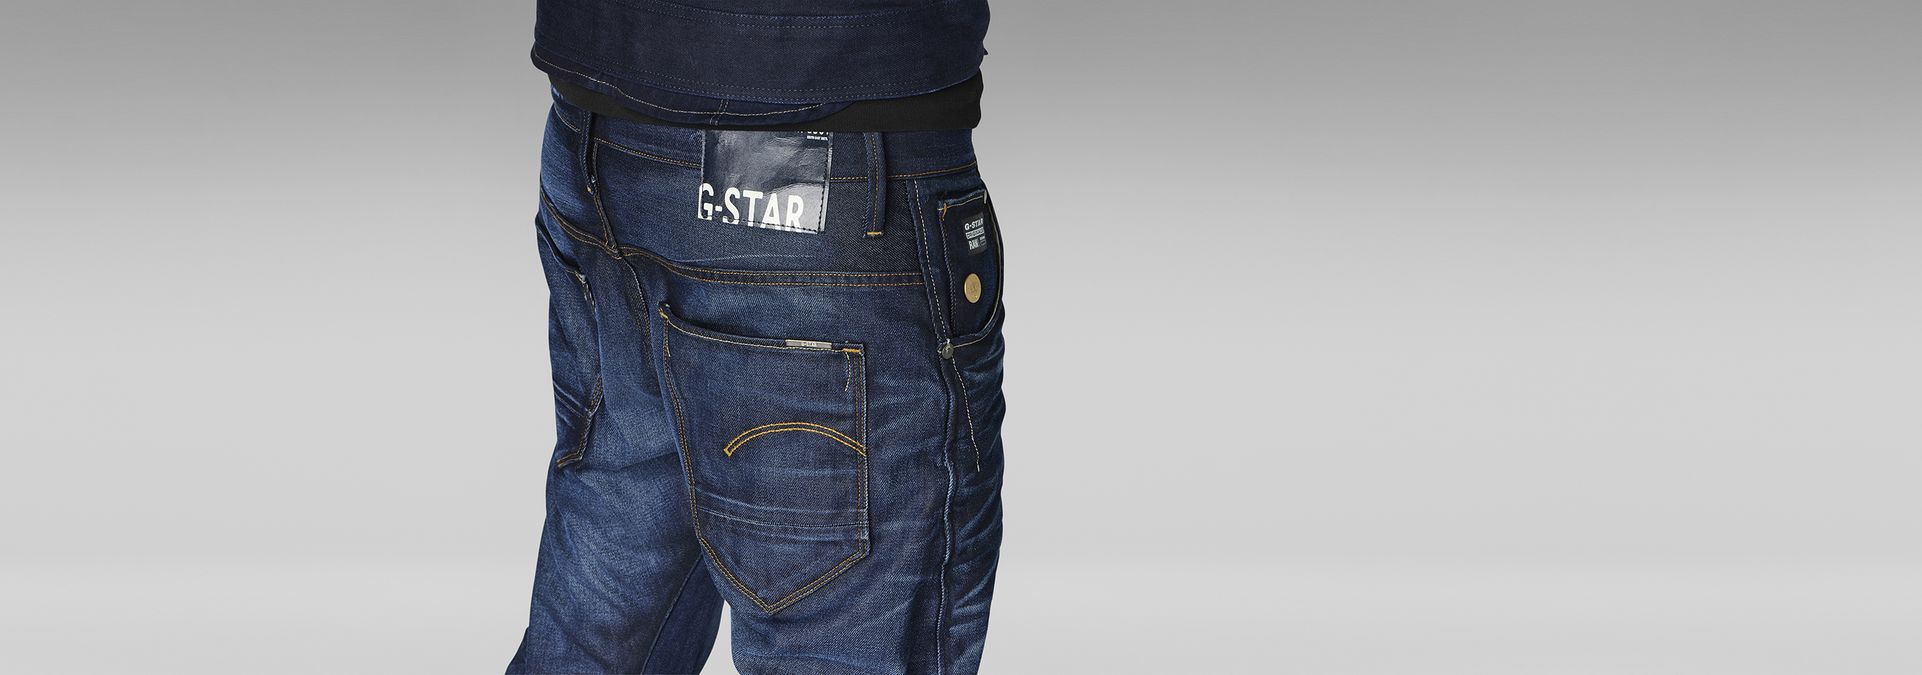 3301 low waist tapered jeans medium aged g star raw. Black Bedroom Furniture Sets. Home Design Ideas